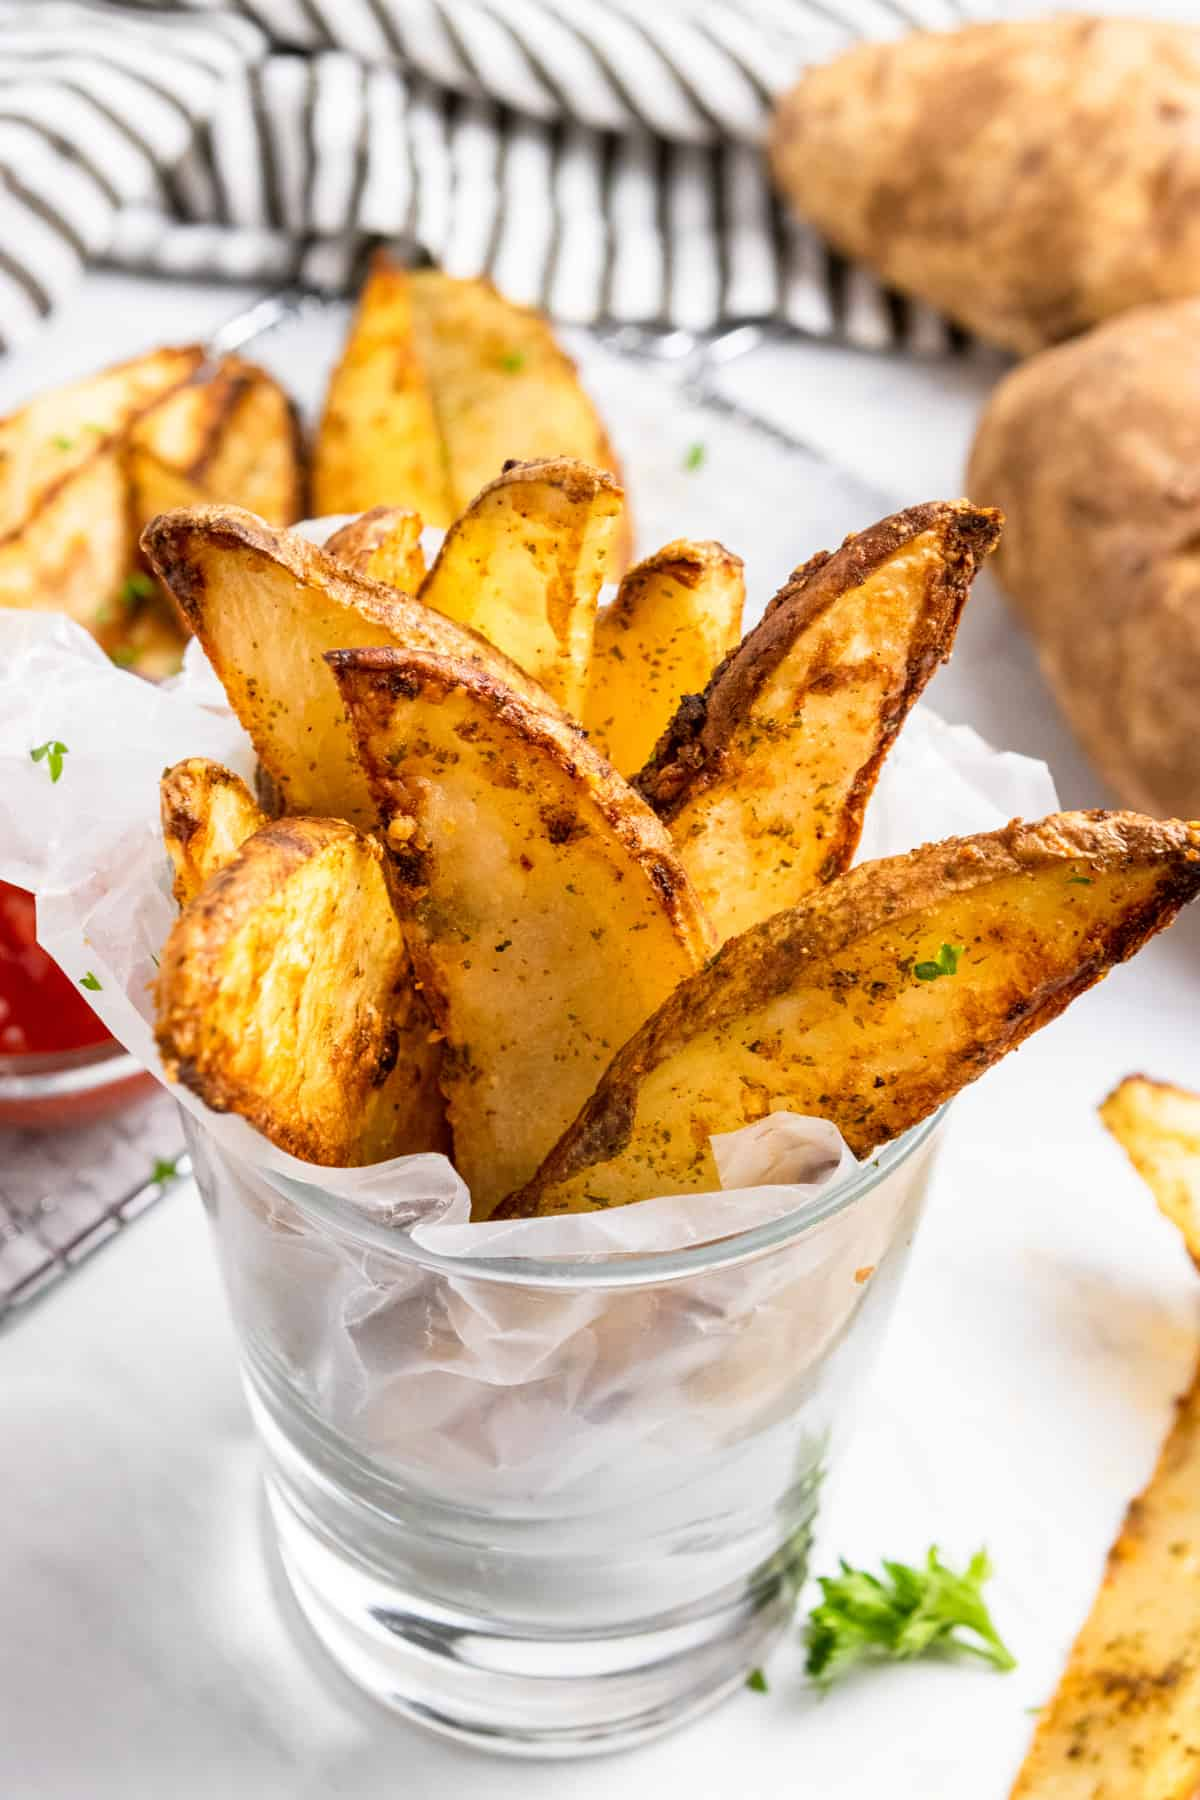 Crispy air fried potato wedges in glass with ketchup.